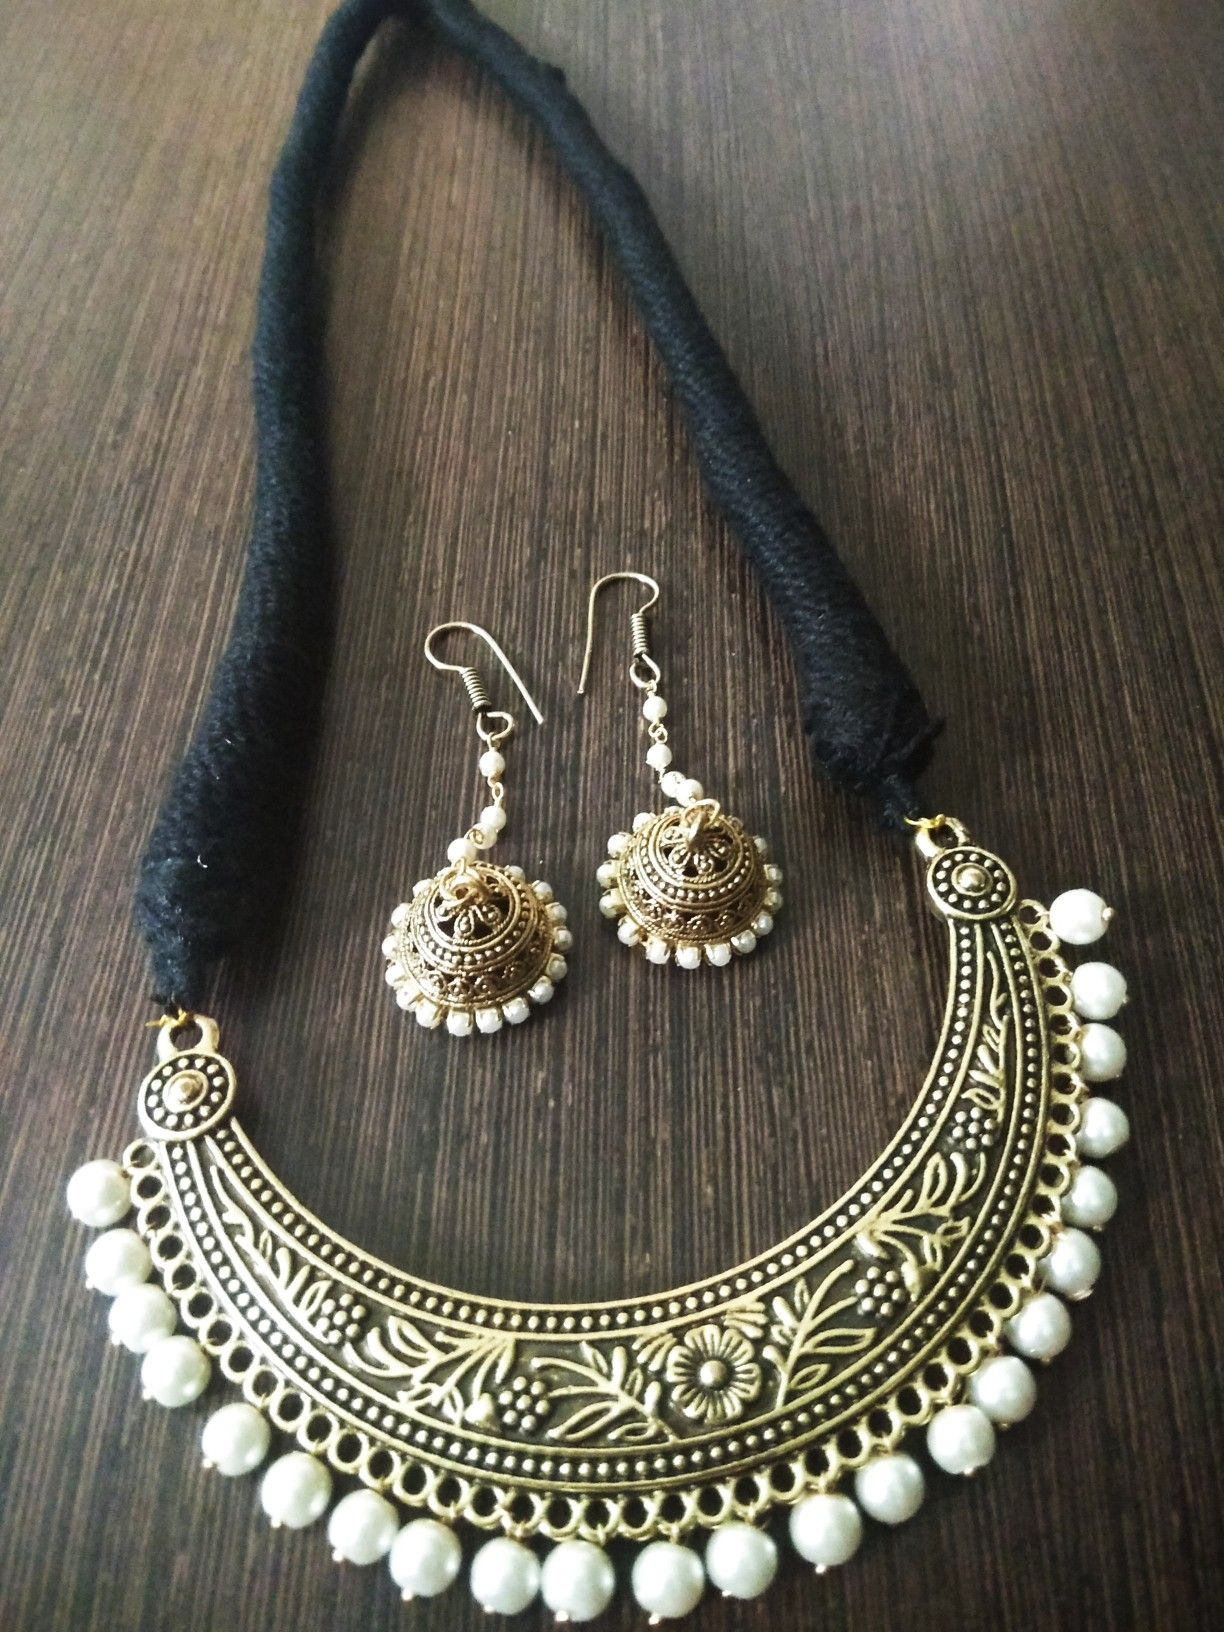 Pin By Lakshmi Nelakanti On Dori Necklace With Images Handmade Beaded Necklaces Beaded Jewelry Designs Jewelry Design Earrings